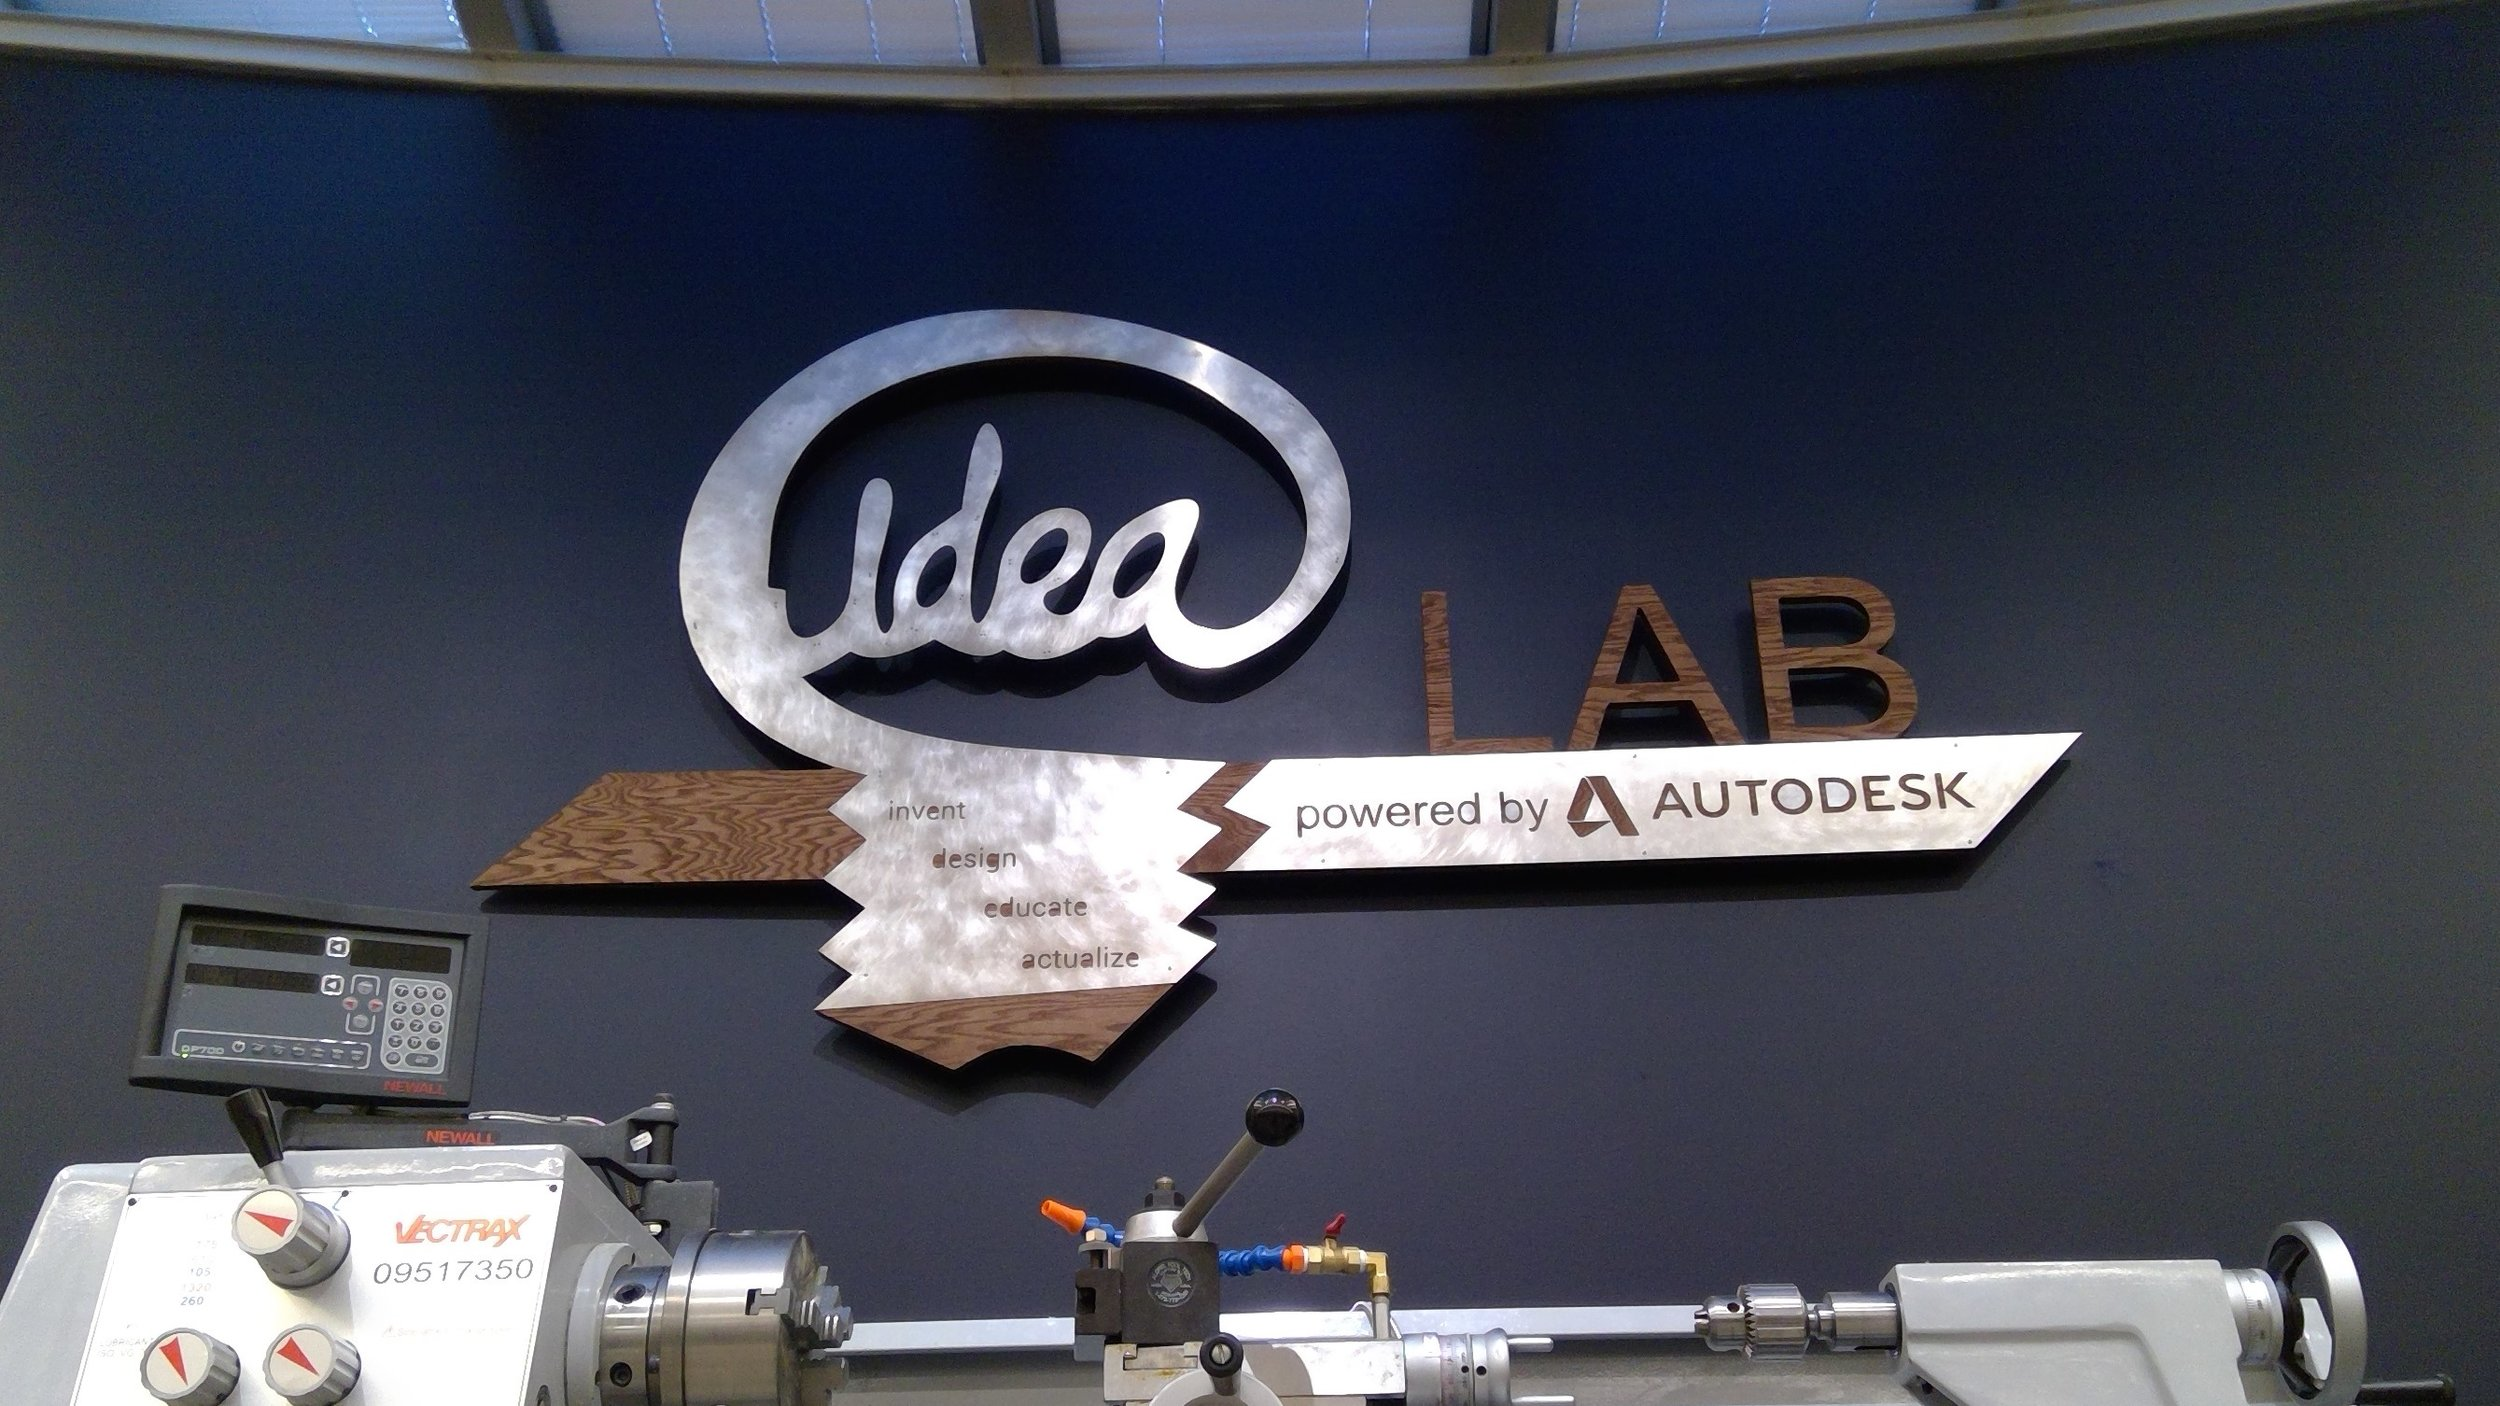 IDEA Lab Sign - Autodesk and Georgia Tech collaborated to renovate a beautiful new hands-on lab space to foster the Mechanical Engineering program's Creative Decisions and Design curriculum. This sign was commissioned to capture the new aesthetic and spirit of the space for the grand opening on March 28th, 2018.